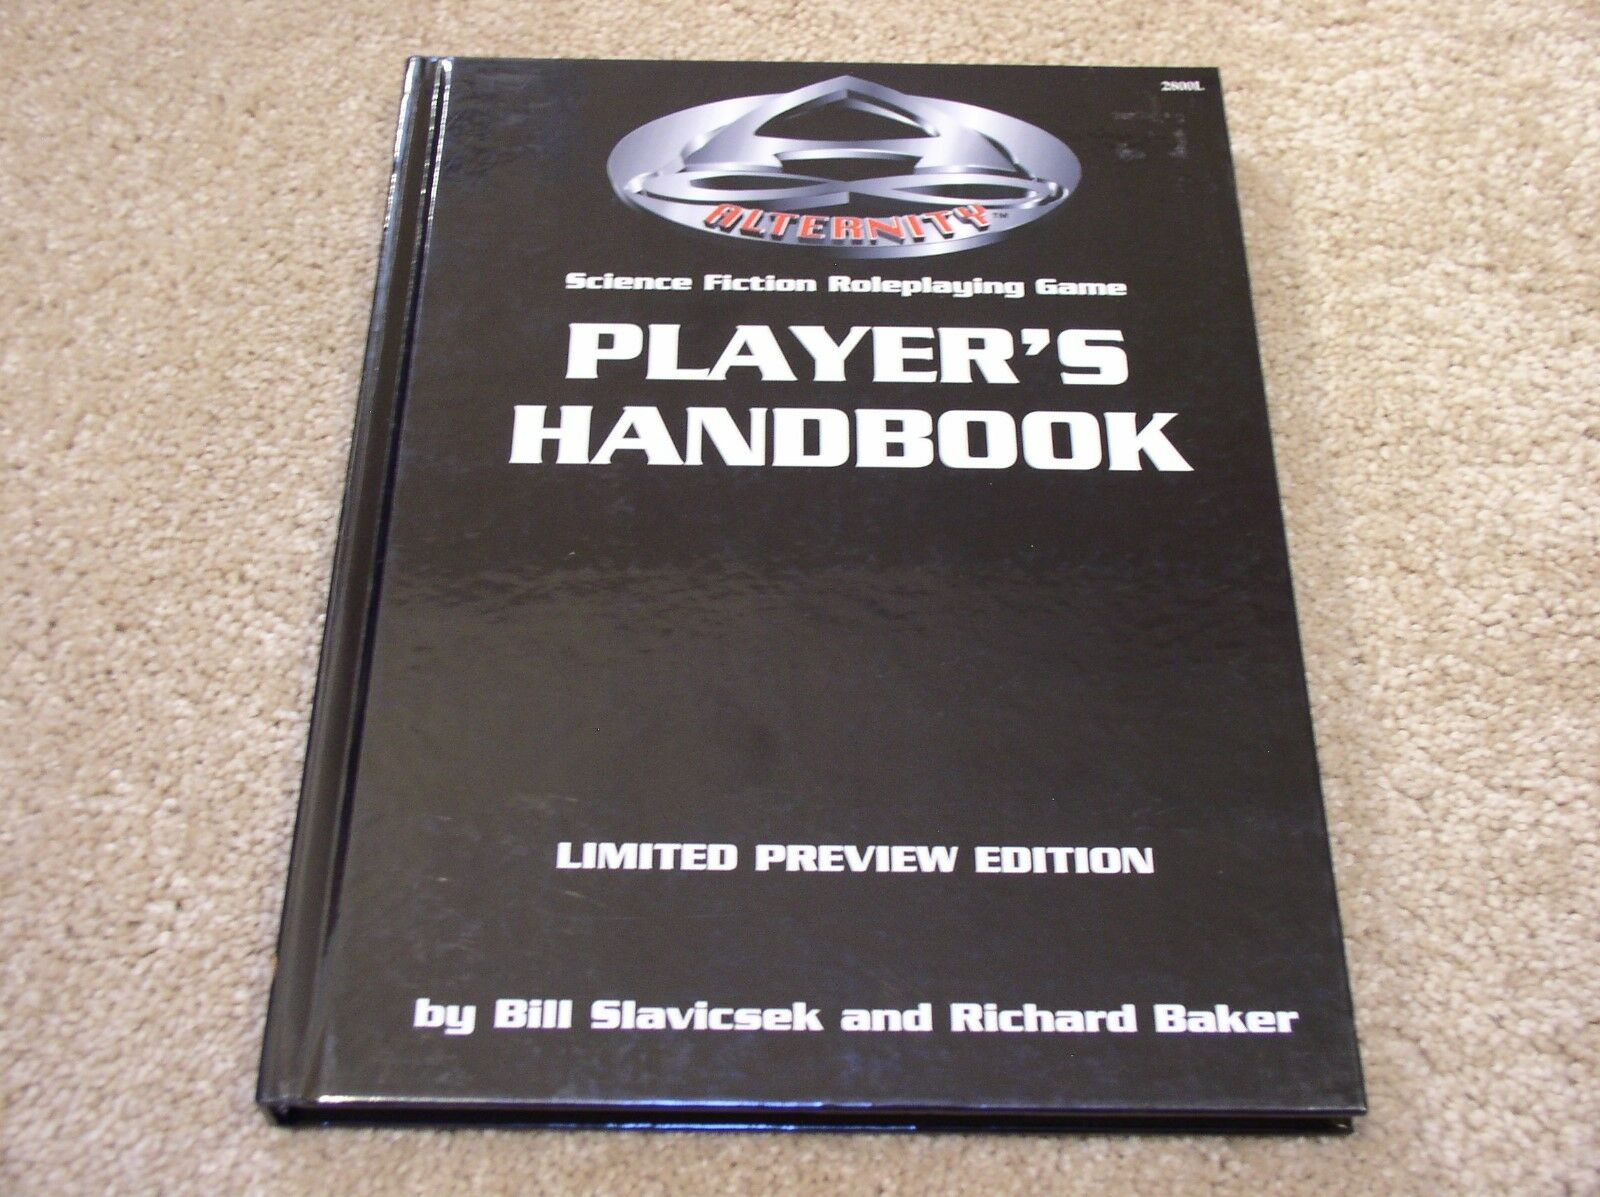 TSR Alternity Player's Handbook Limited Preview Edition